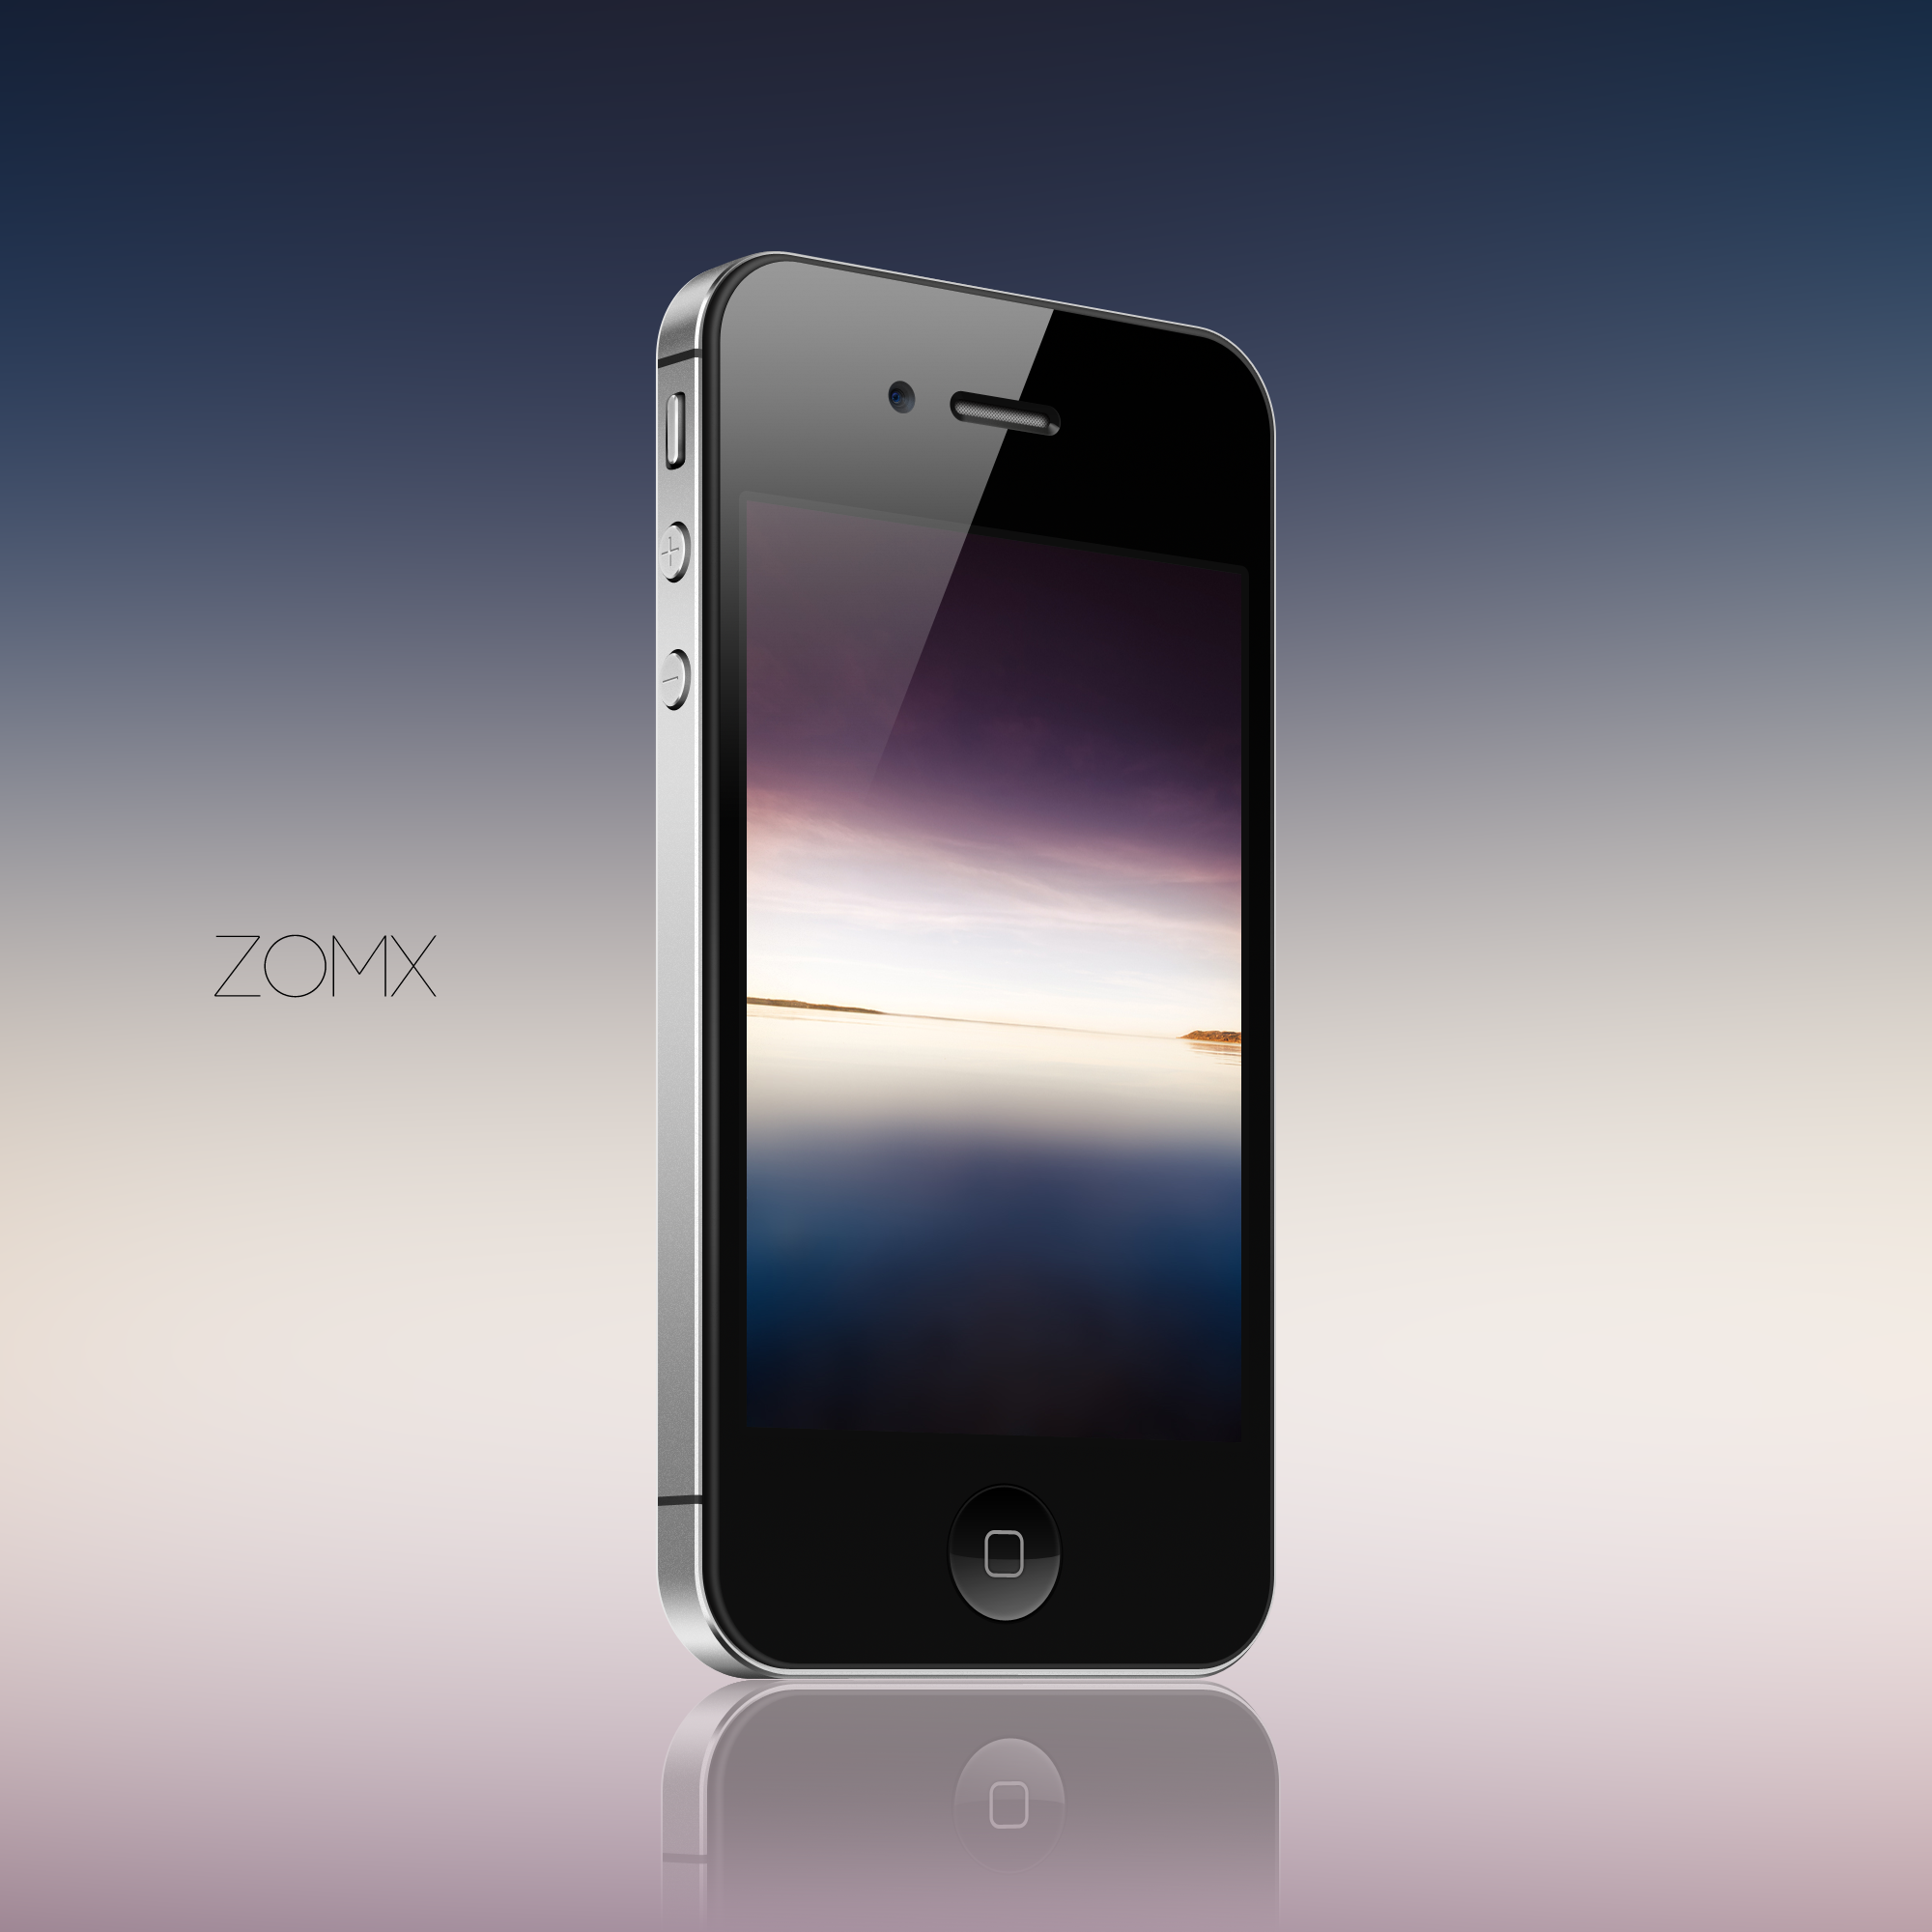 Iphone6 Wallpapers: Wallpaper For IPhone By Zomx On DeviantArt